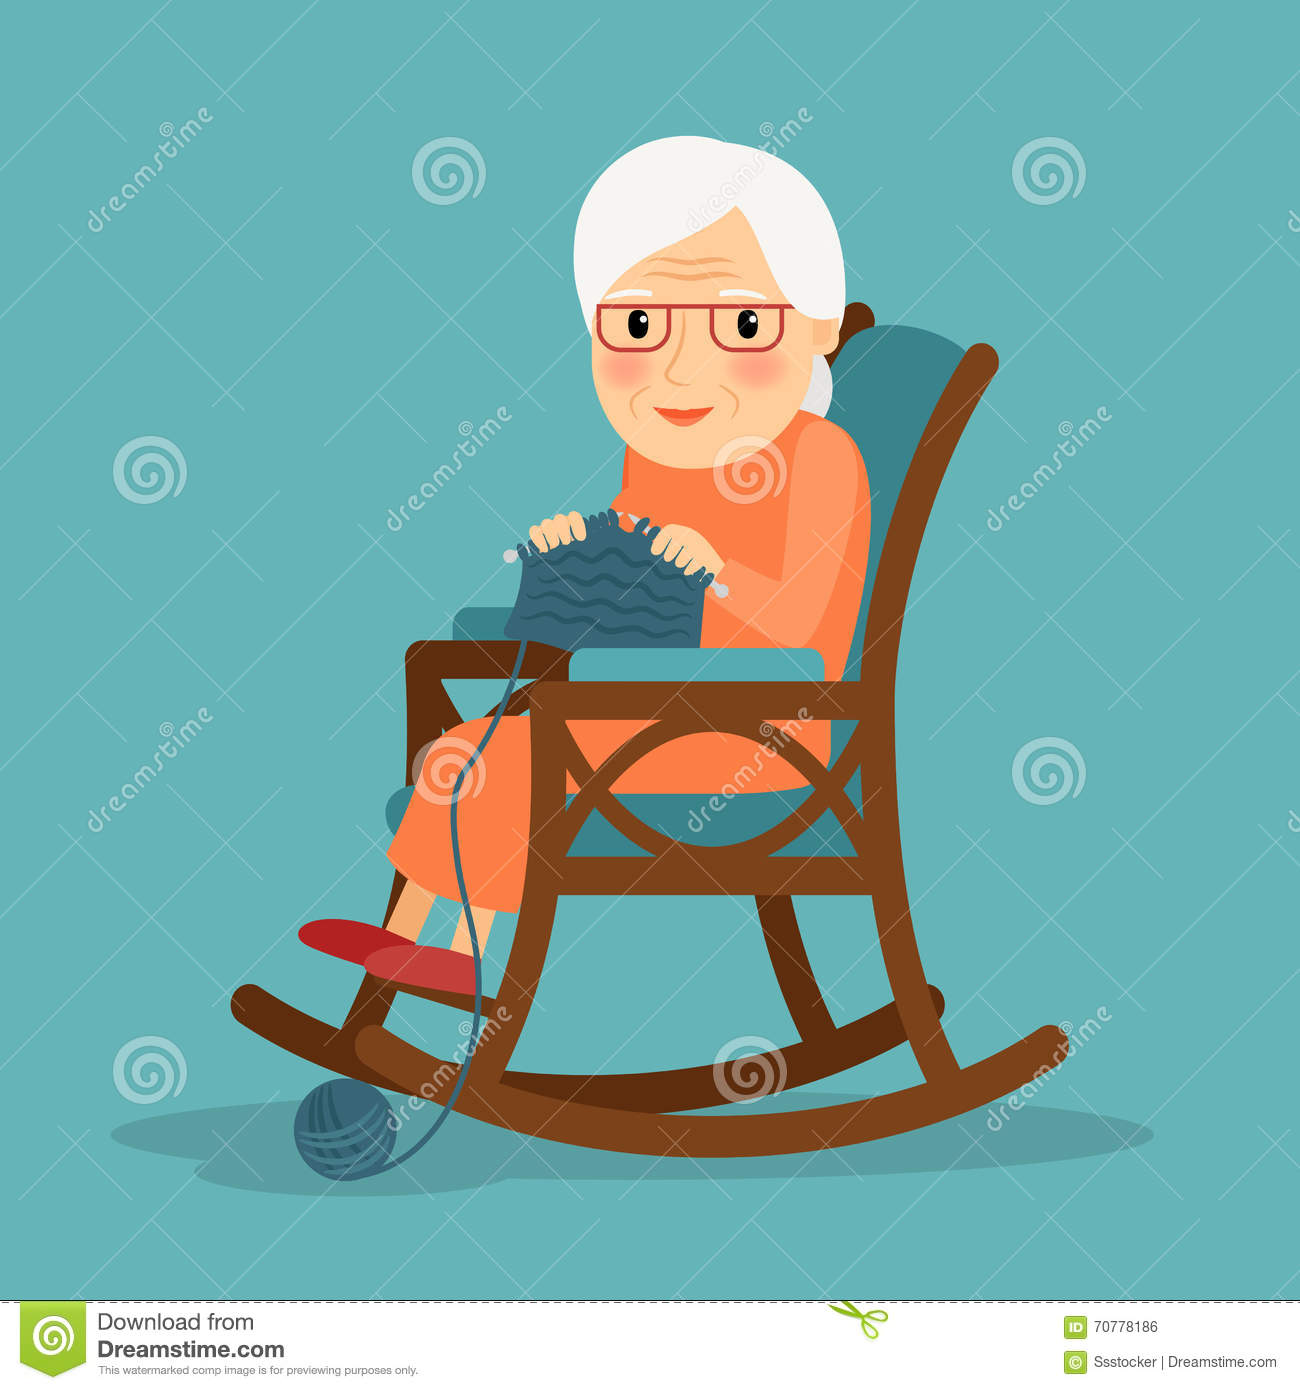 old lady chair flexible love grandmother knits vector flat cartoon illustration